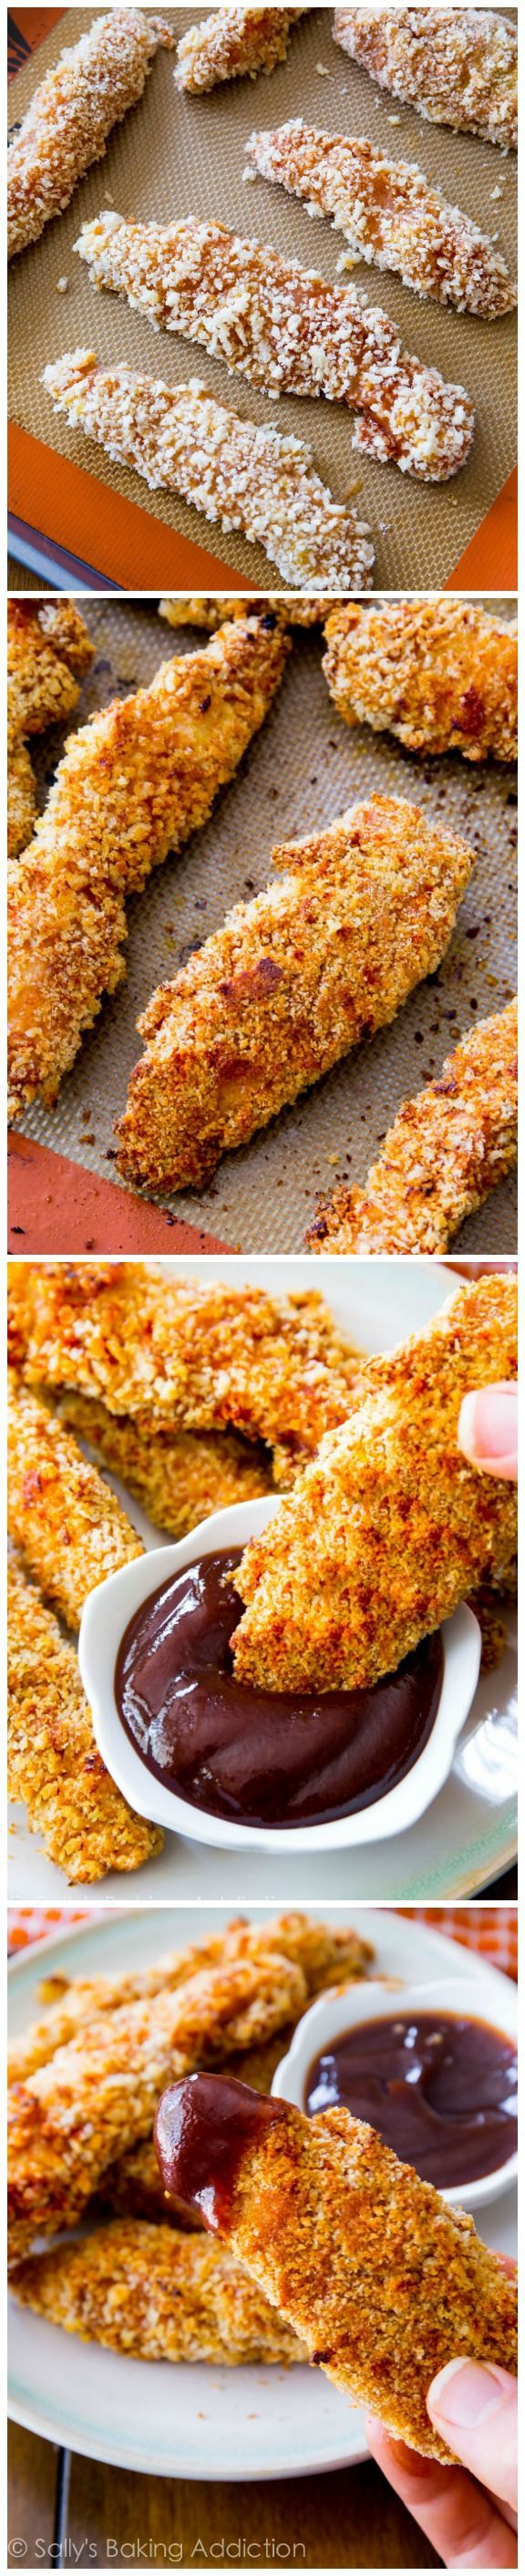 An easy, healthy recipe for baked honey BBQ chicken fingers. Your whole family will love them!